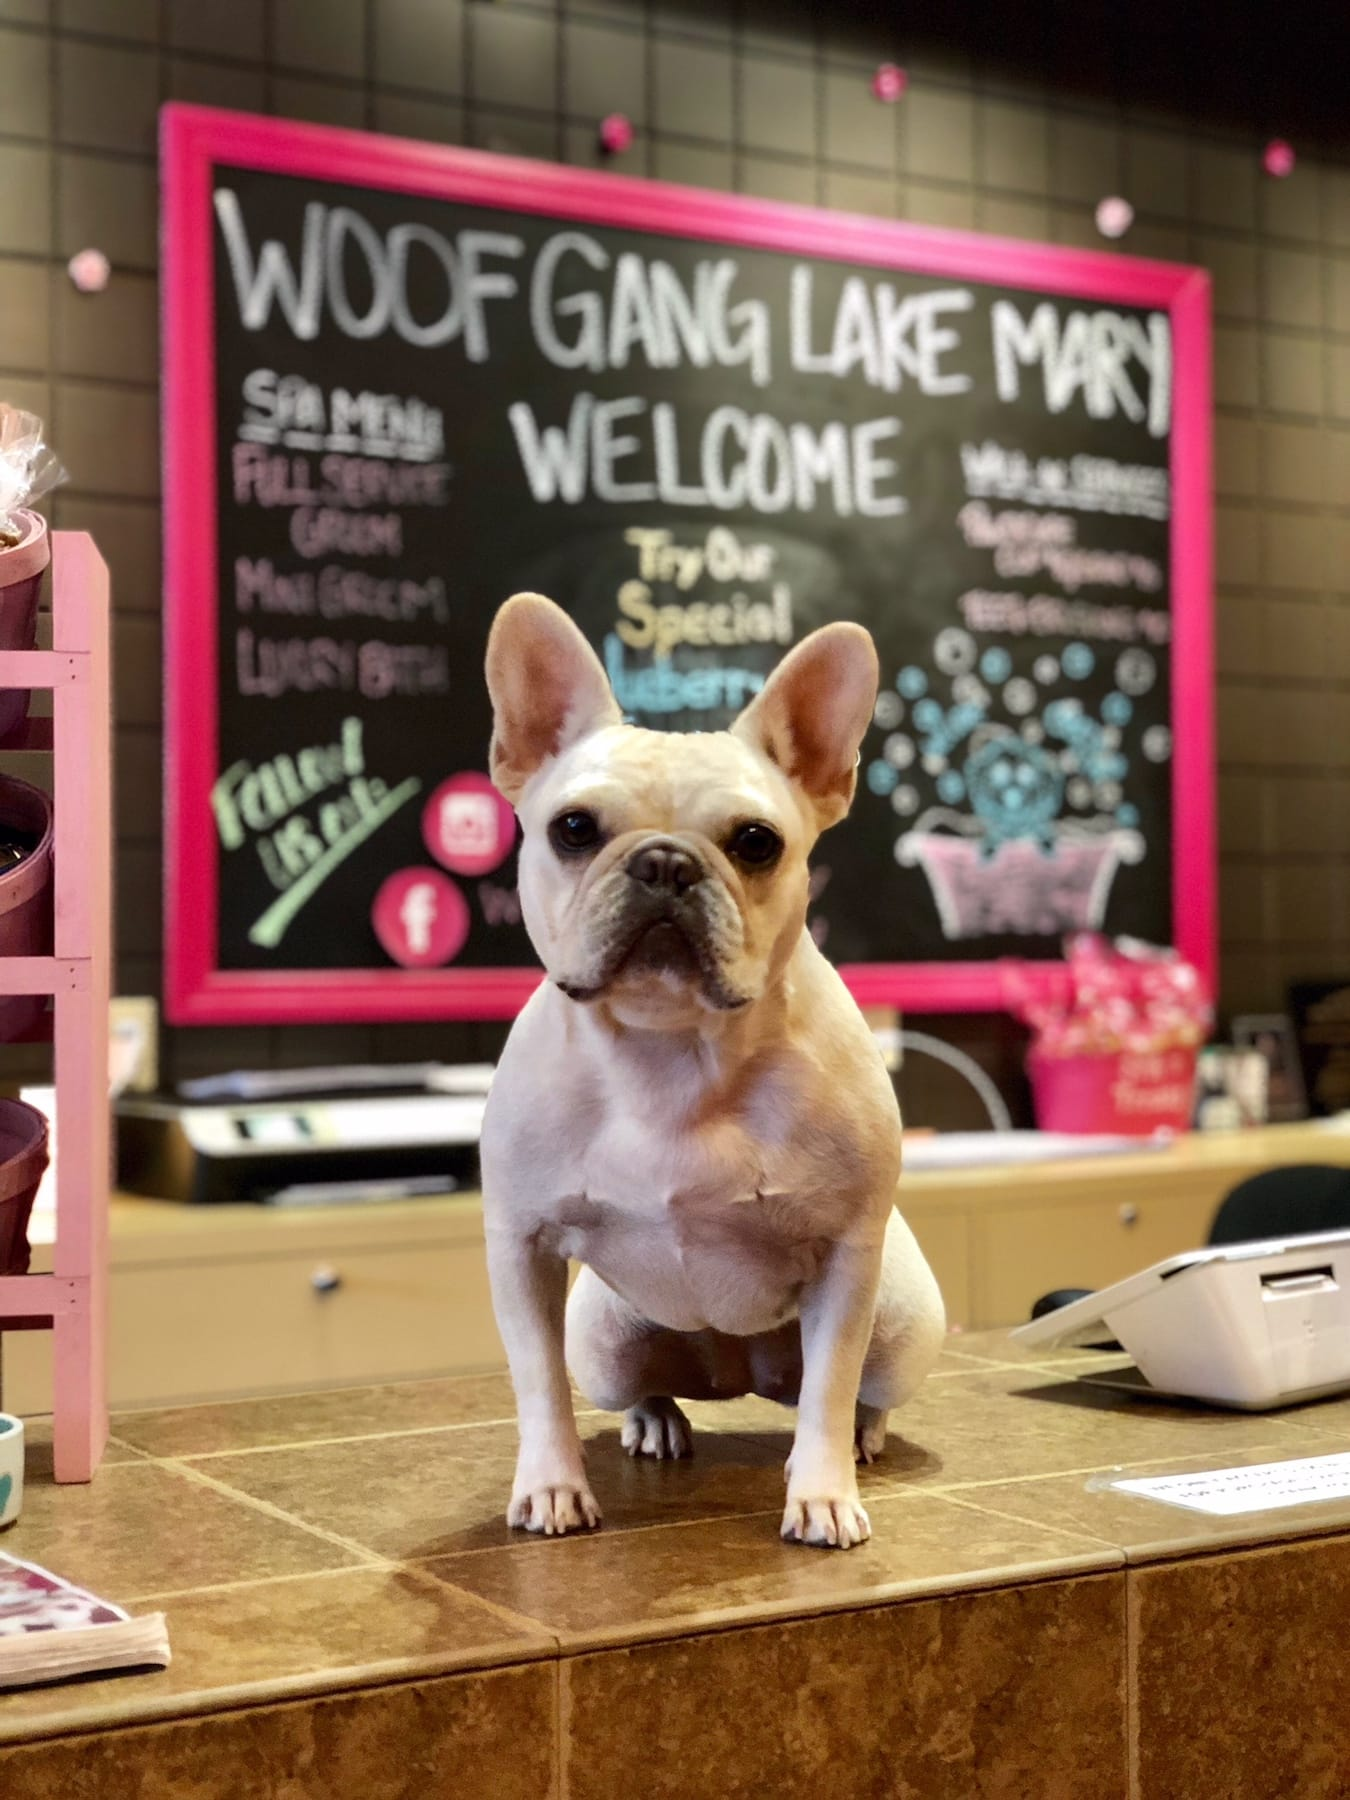 Dog on counter at Woof Gang Bakery store